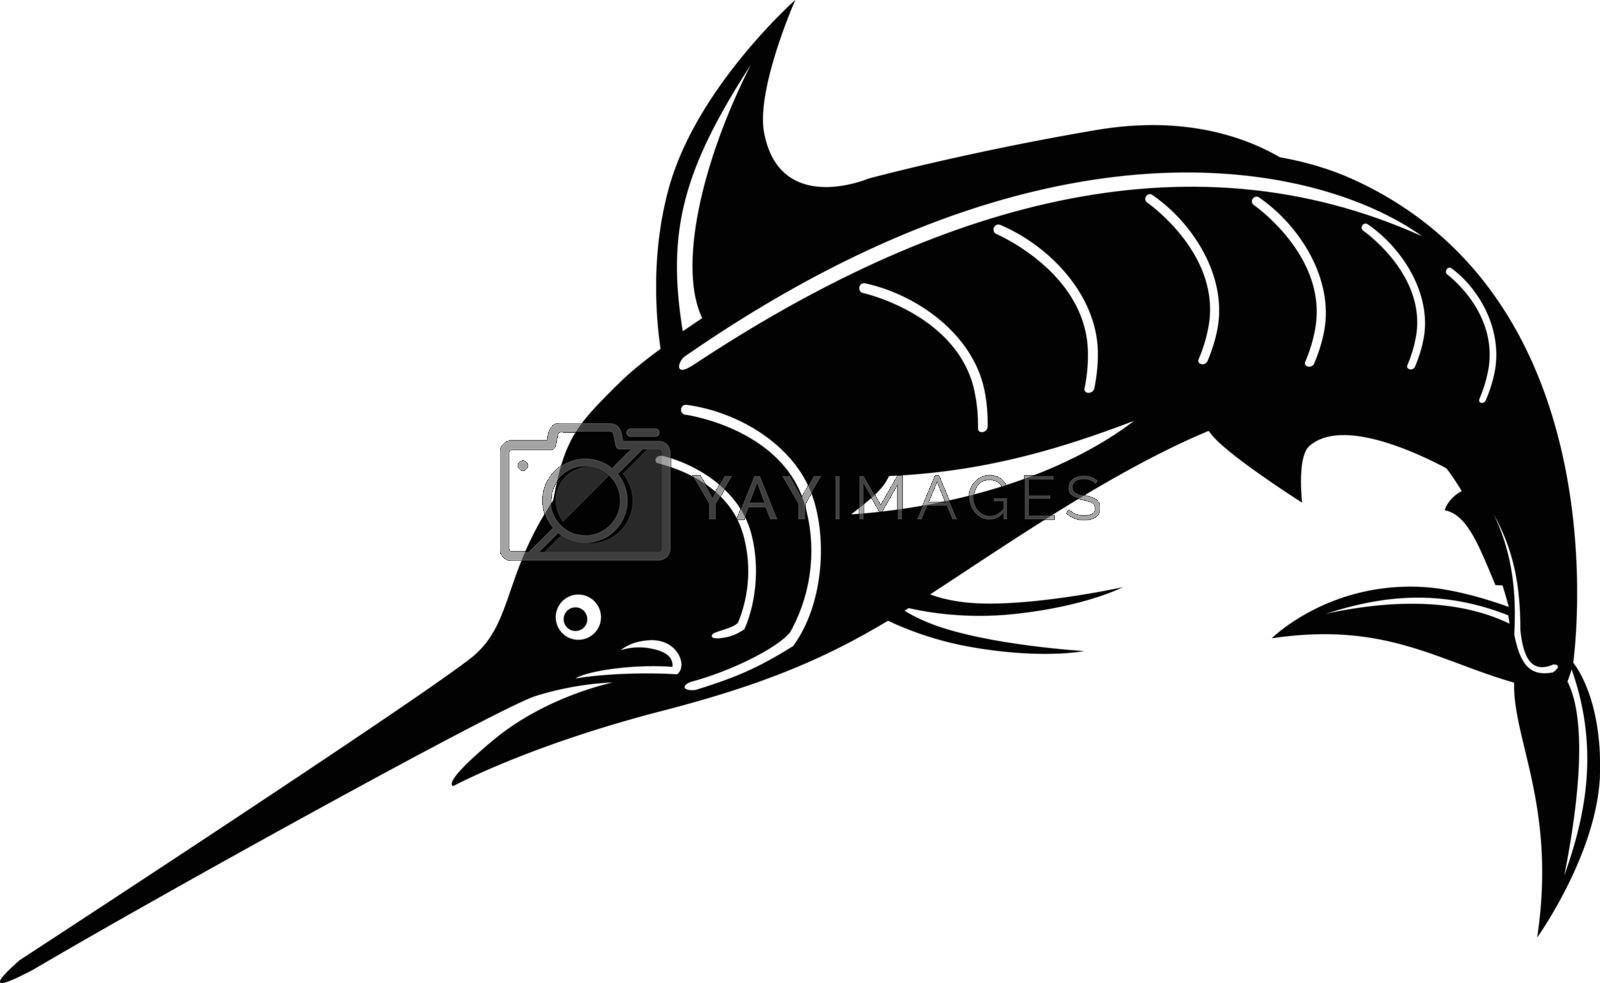 Retro woodcut style illustration of an Atlantic blue marlin, a species of marlin endemic to the Atlantic Ocean, jumping upward done in black and white on isolated background.